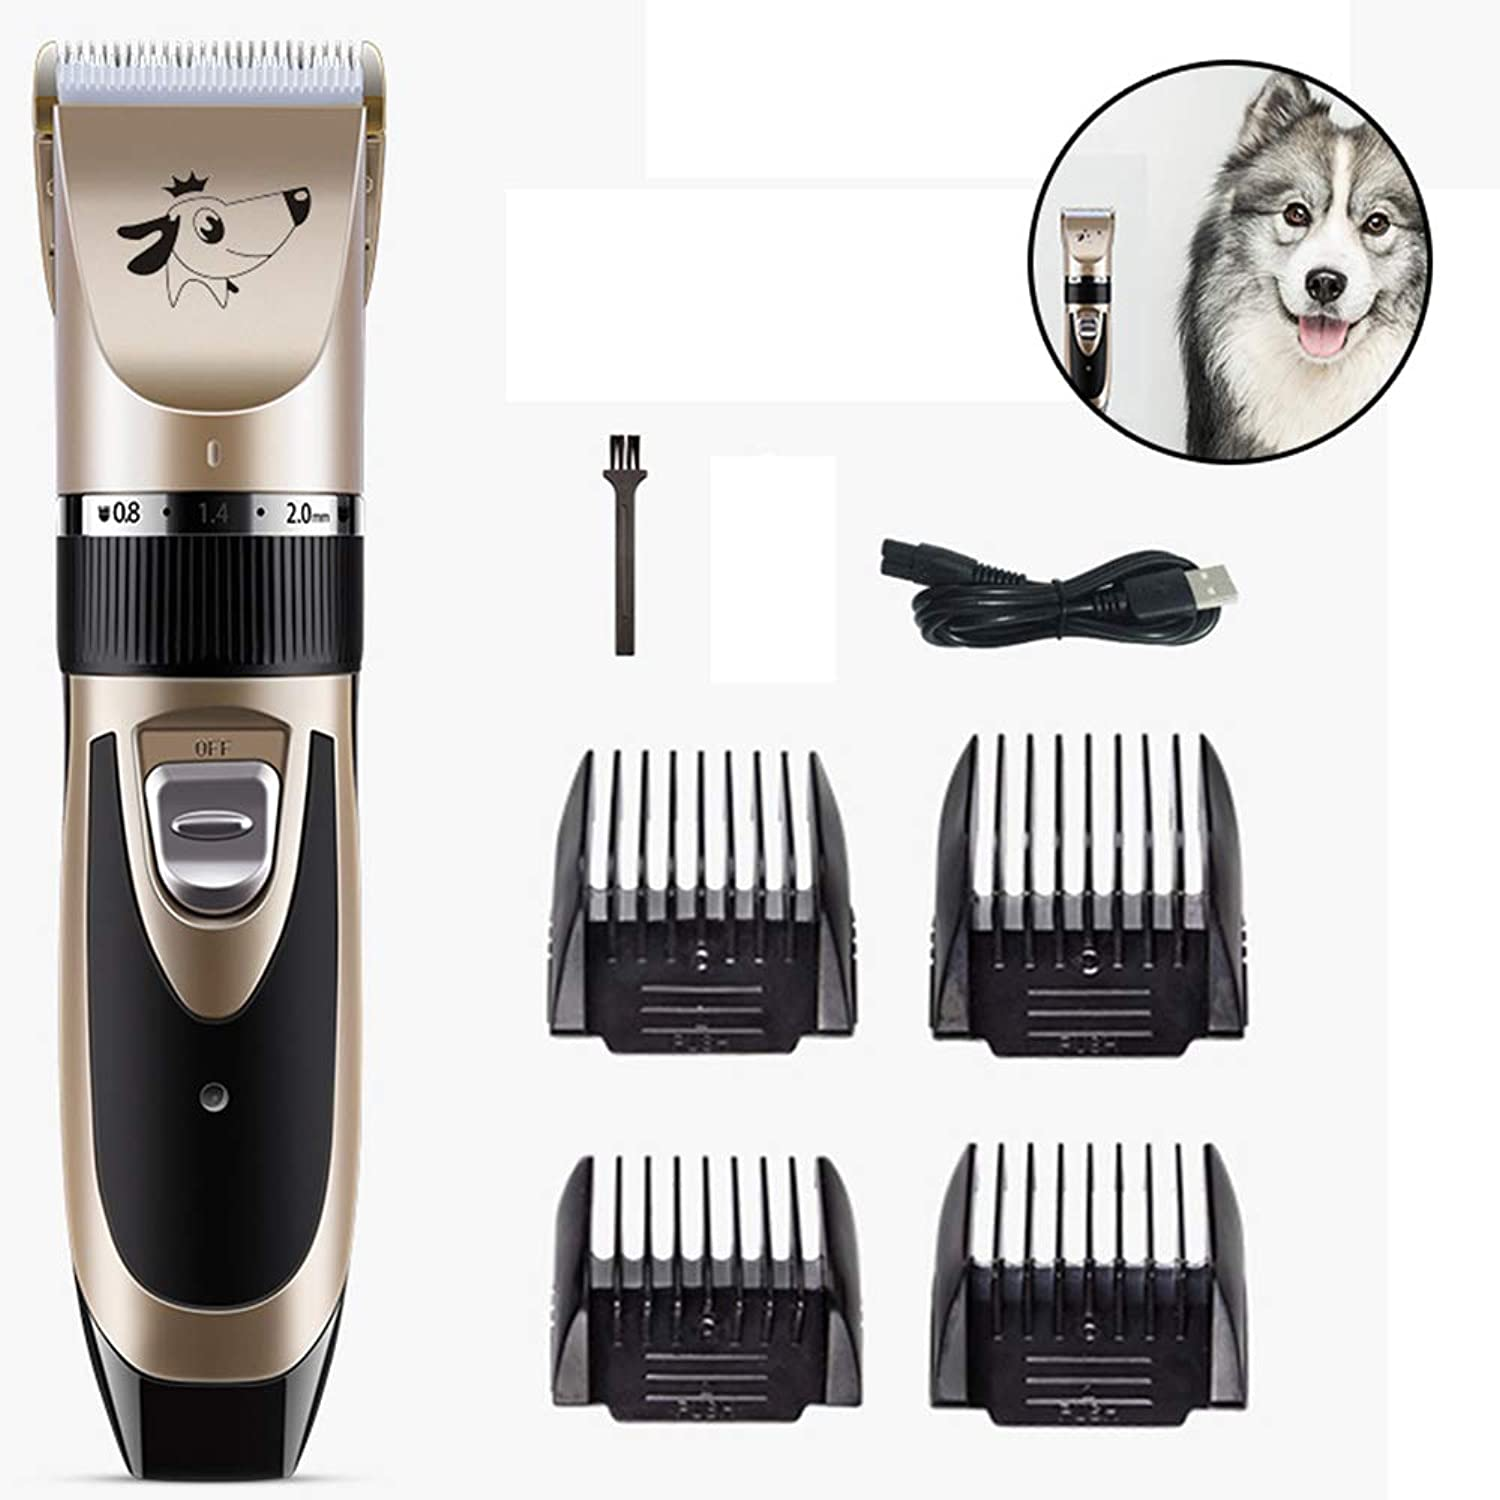 Dog Clippers Pet Grooming Clippers Cordless Dog Grooming Trimmers Low Noise Quiet,USB Charging,Plug and Play